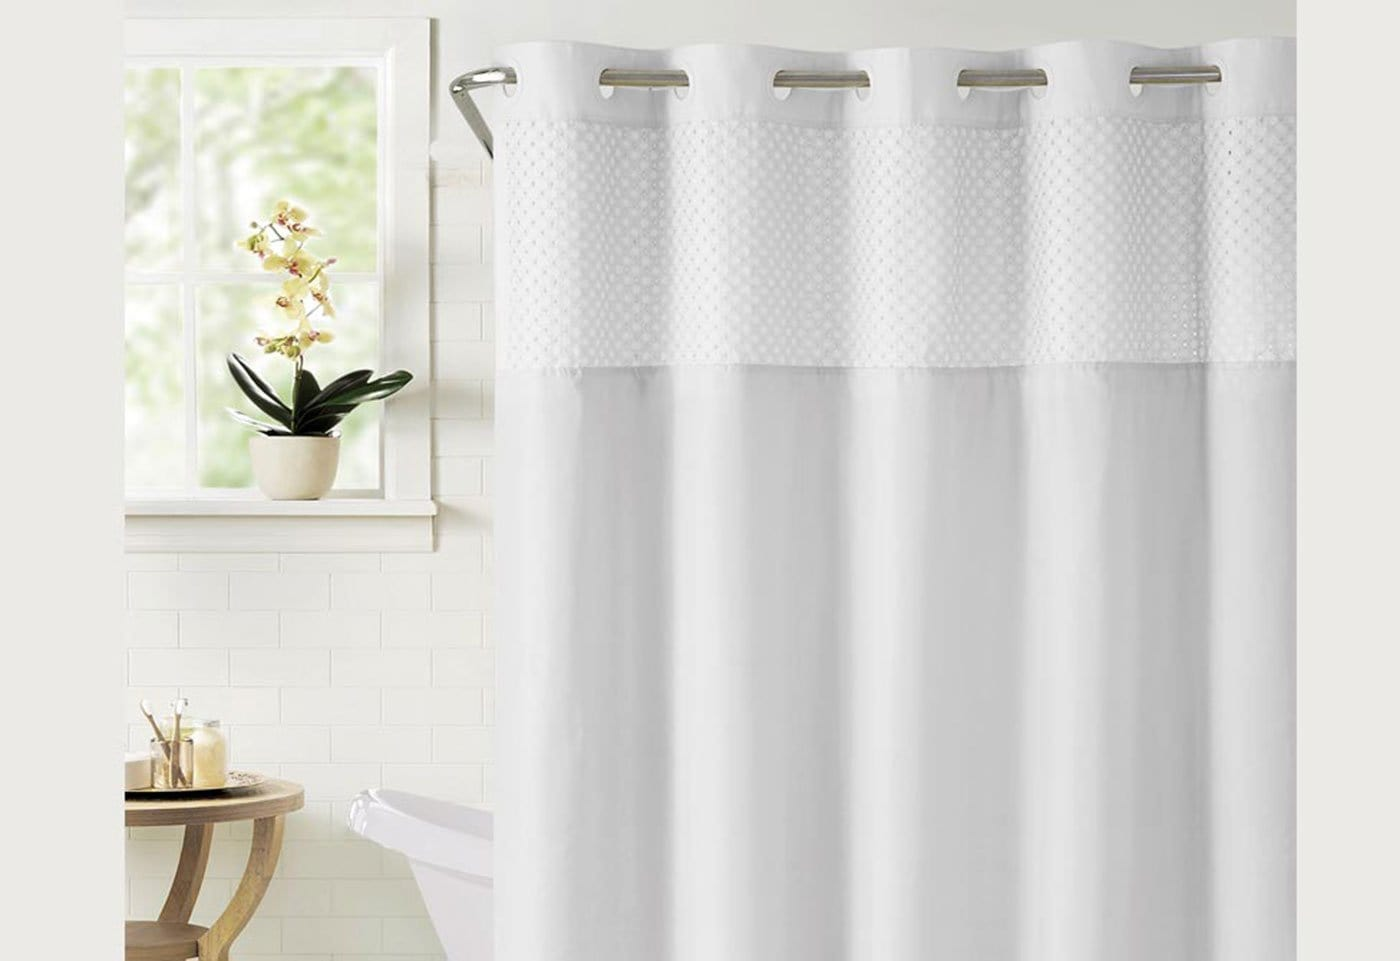 Hookless® Bahamas Shower Curtain Includes Snap On/Off Replaceable Liner - White